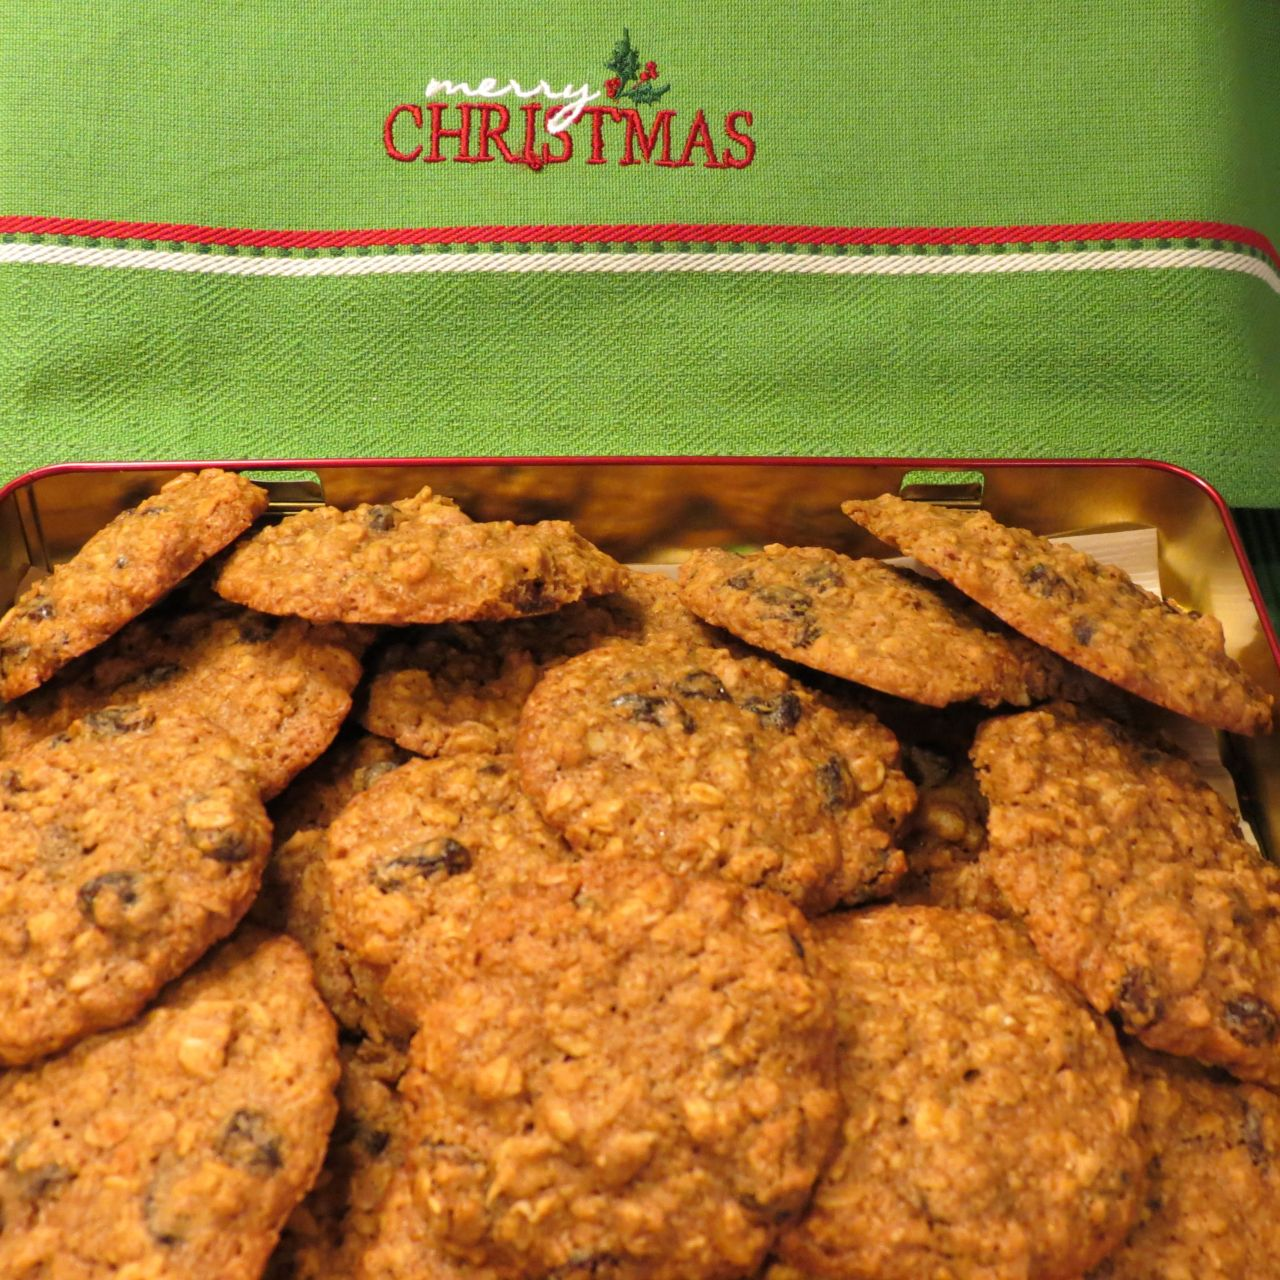 Oatmeal Raisin Cookies Main Picture for Cover